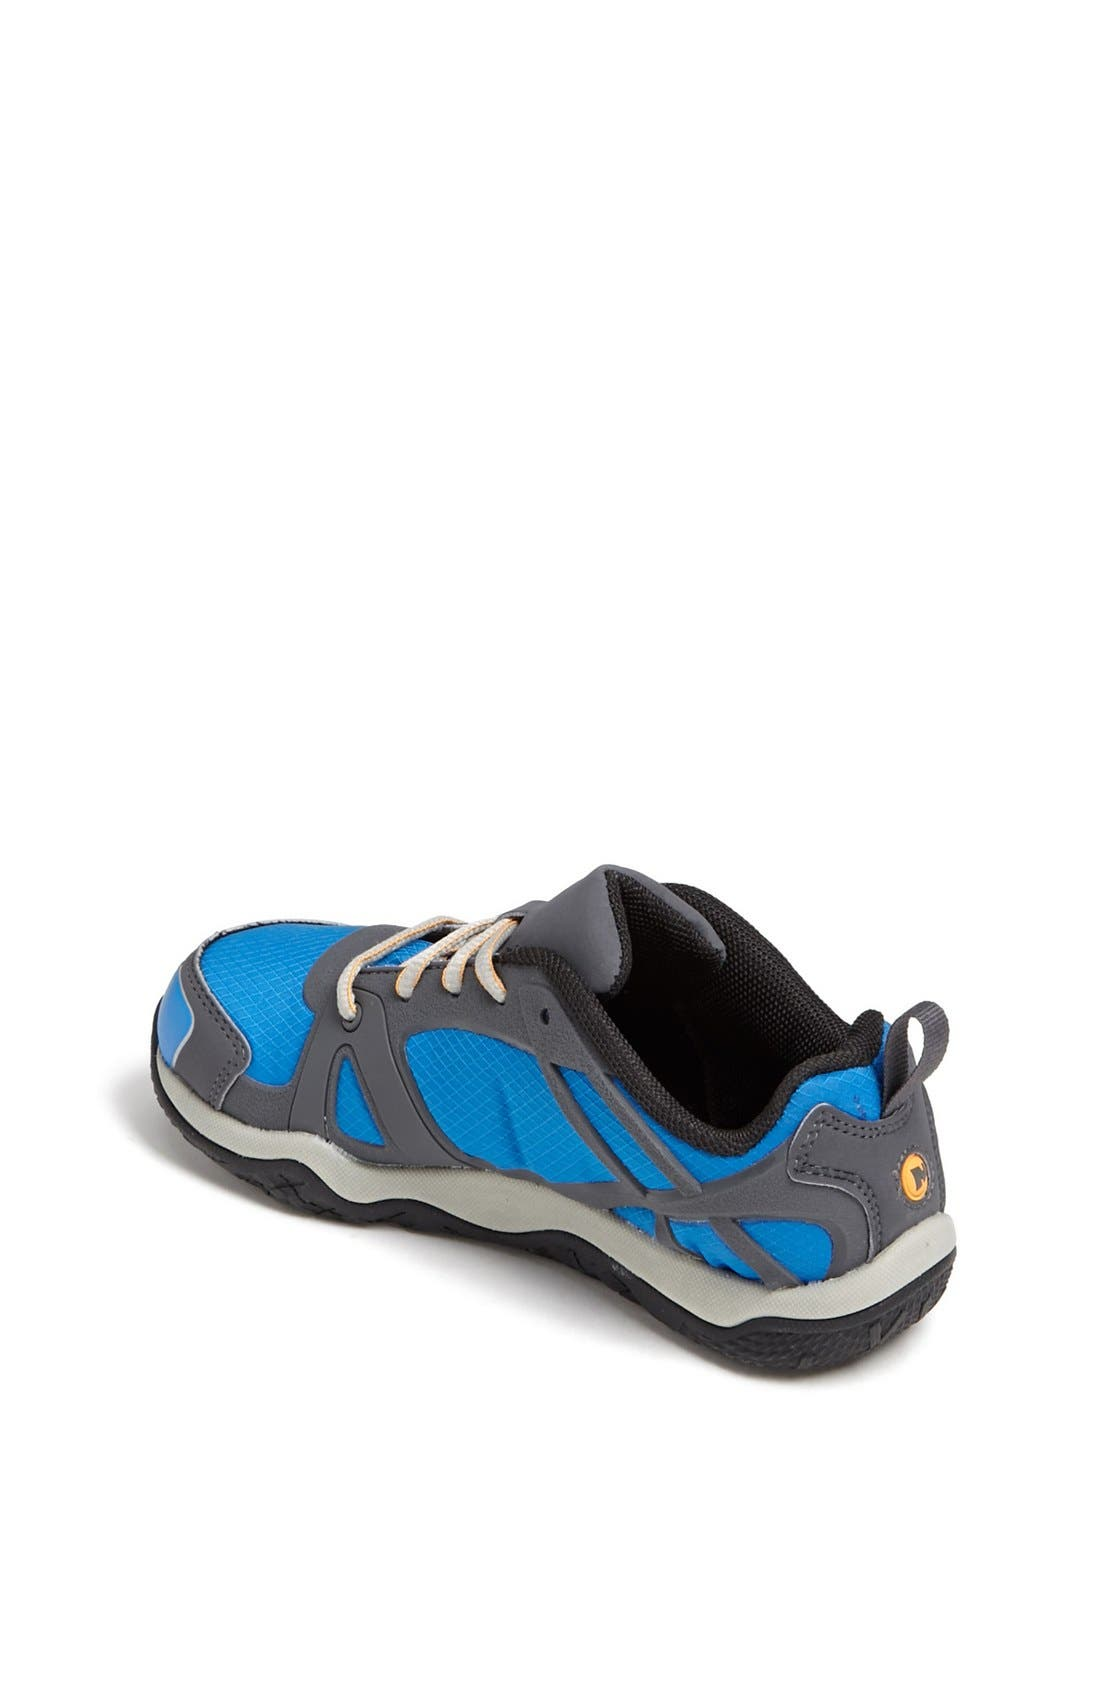 Alternate Image 2  - Merrell 'Proterra Sport' Sneaker (Toddler, Little Kid & Big Kid)